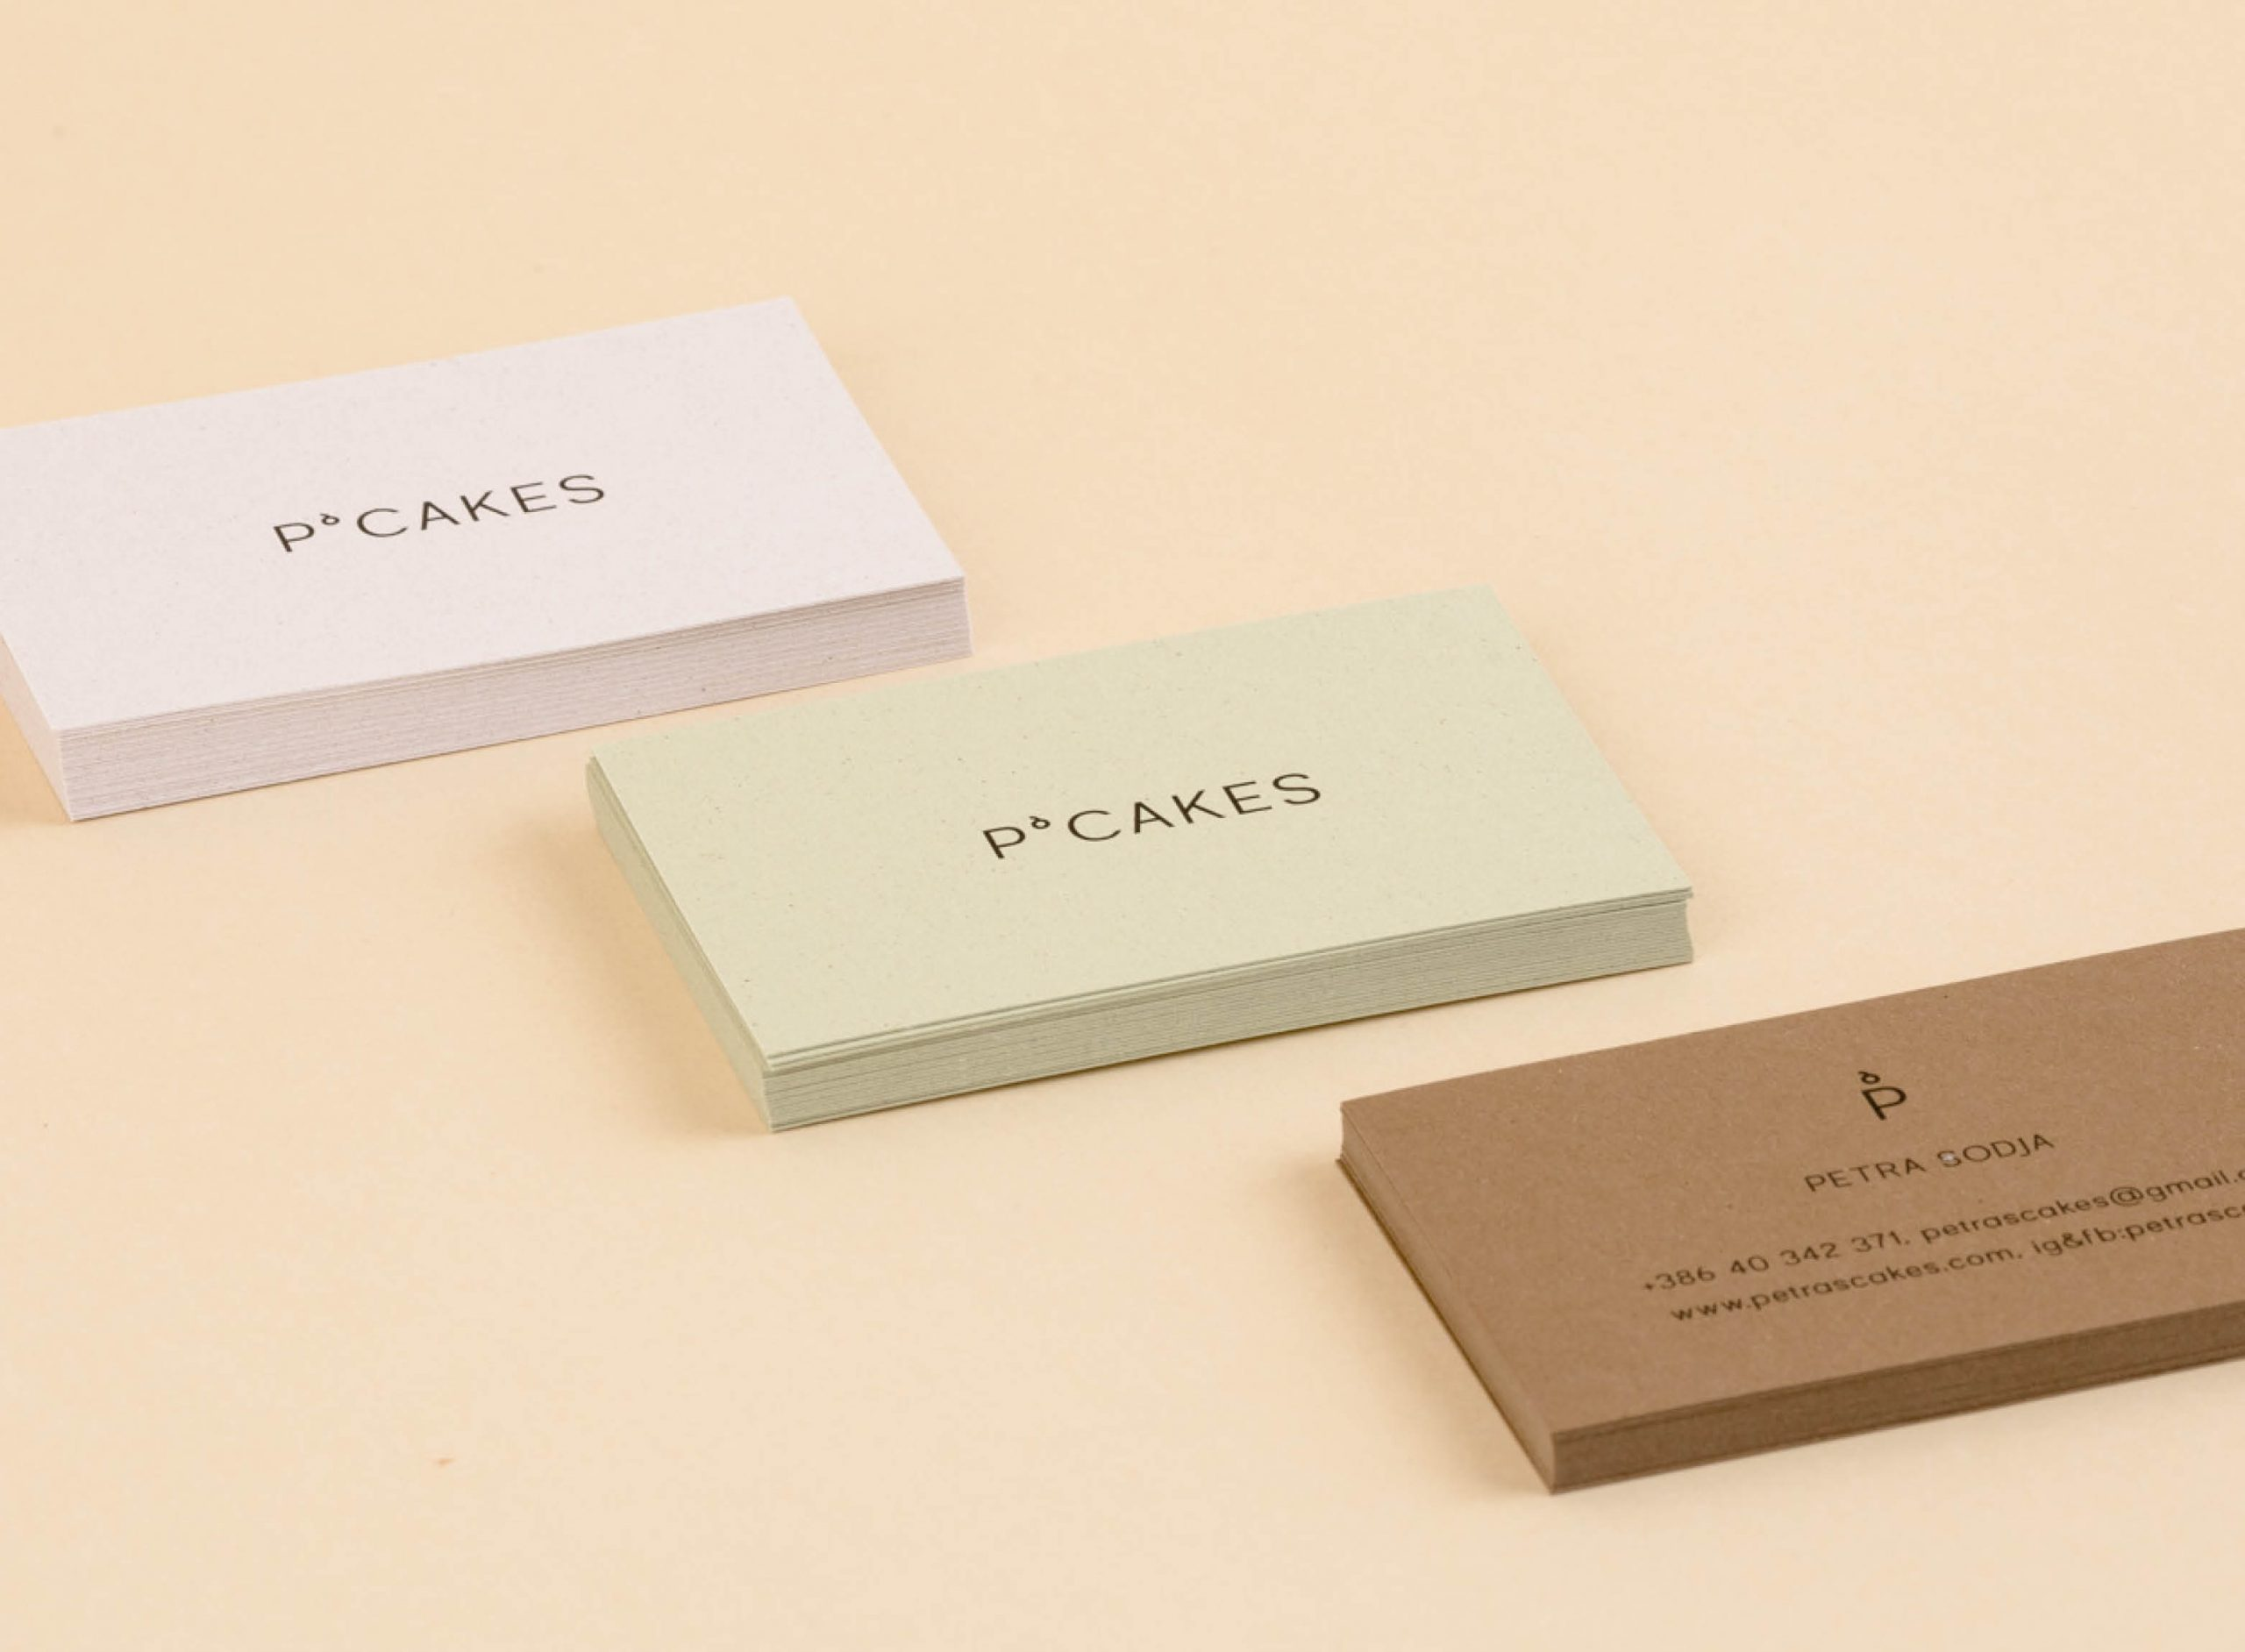 P'cakes business cards